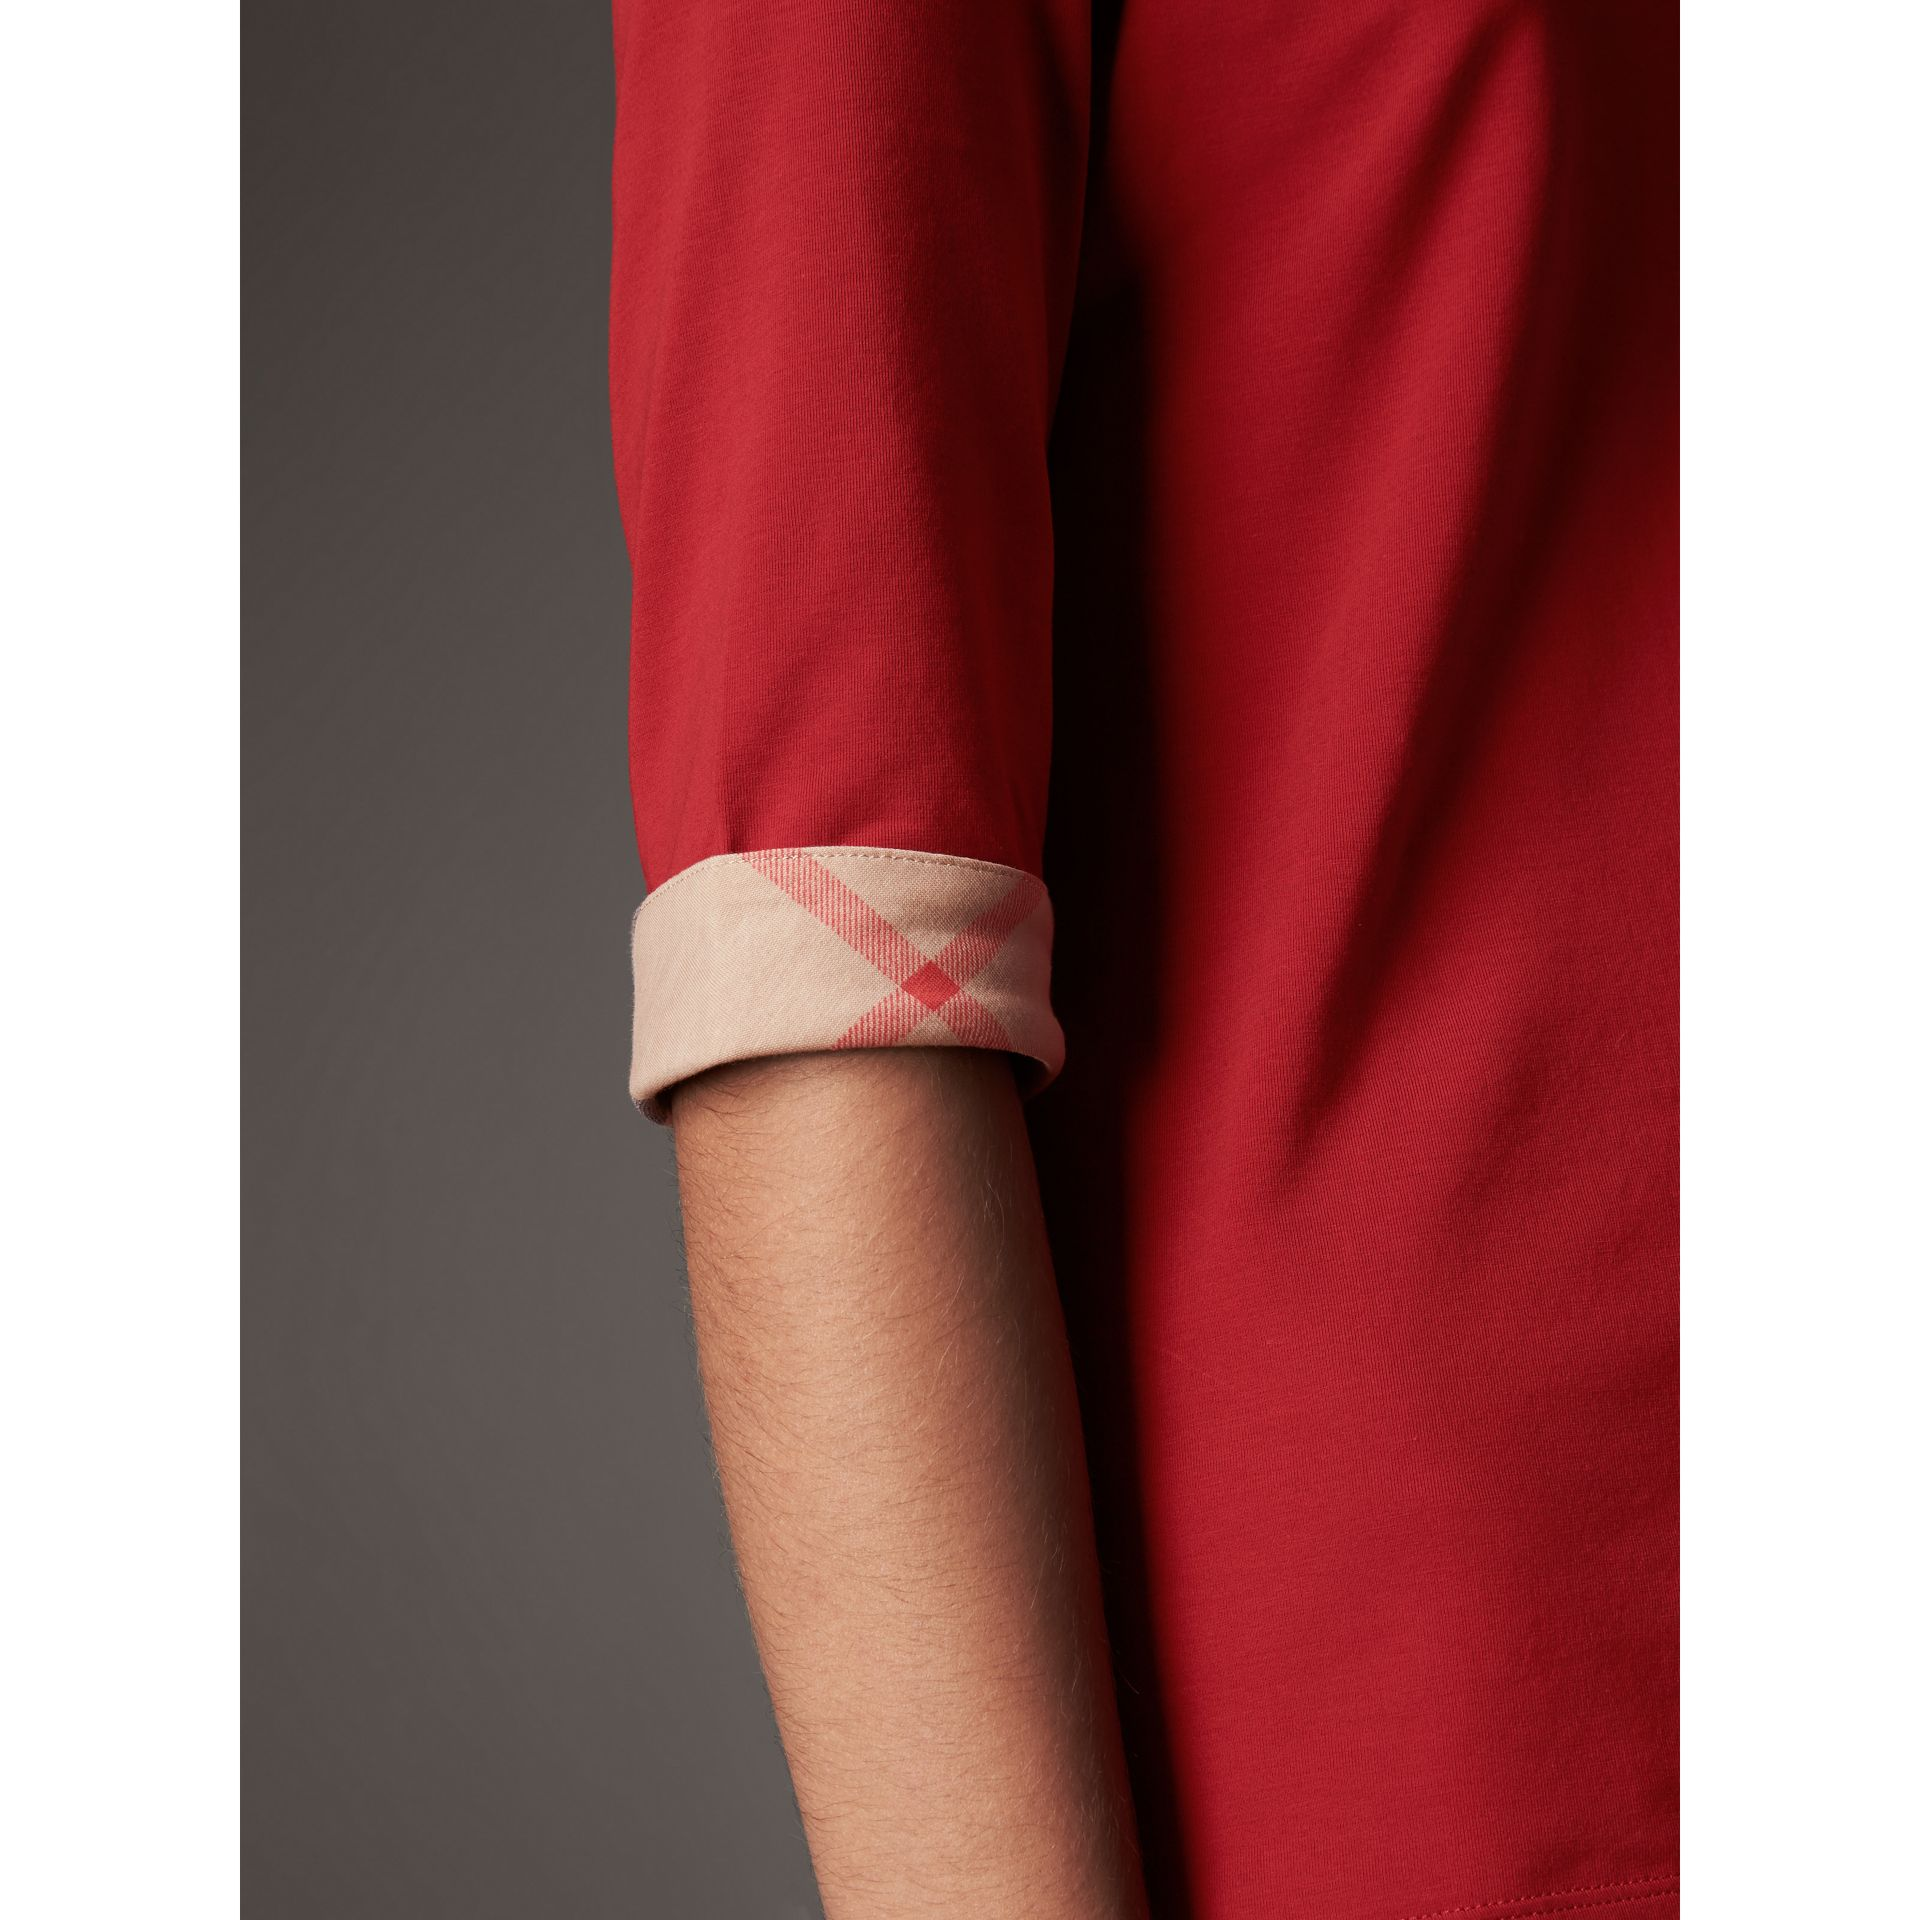 Haut en coton extensible avec revers à motif check (Rouge Laque) - Femme | Burberry - photo de la galerie 2